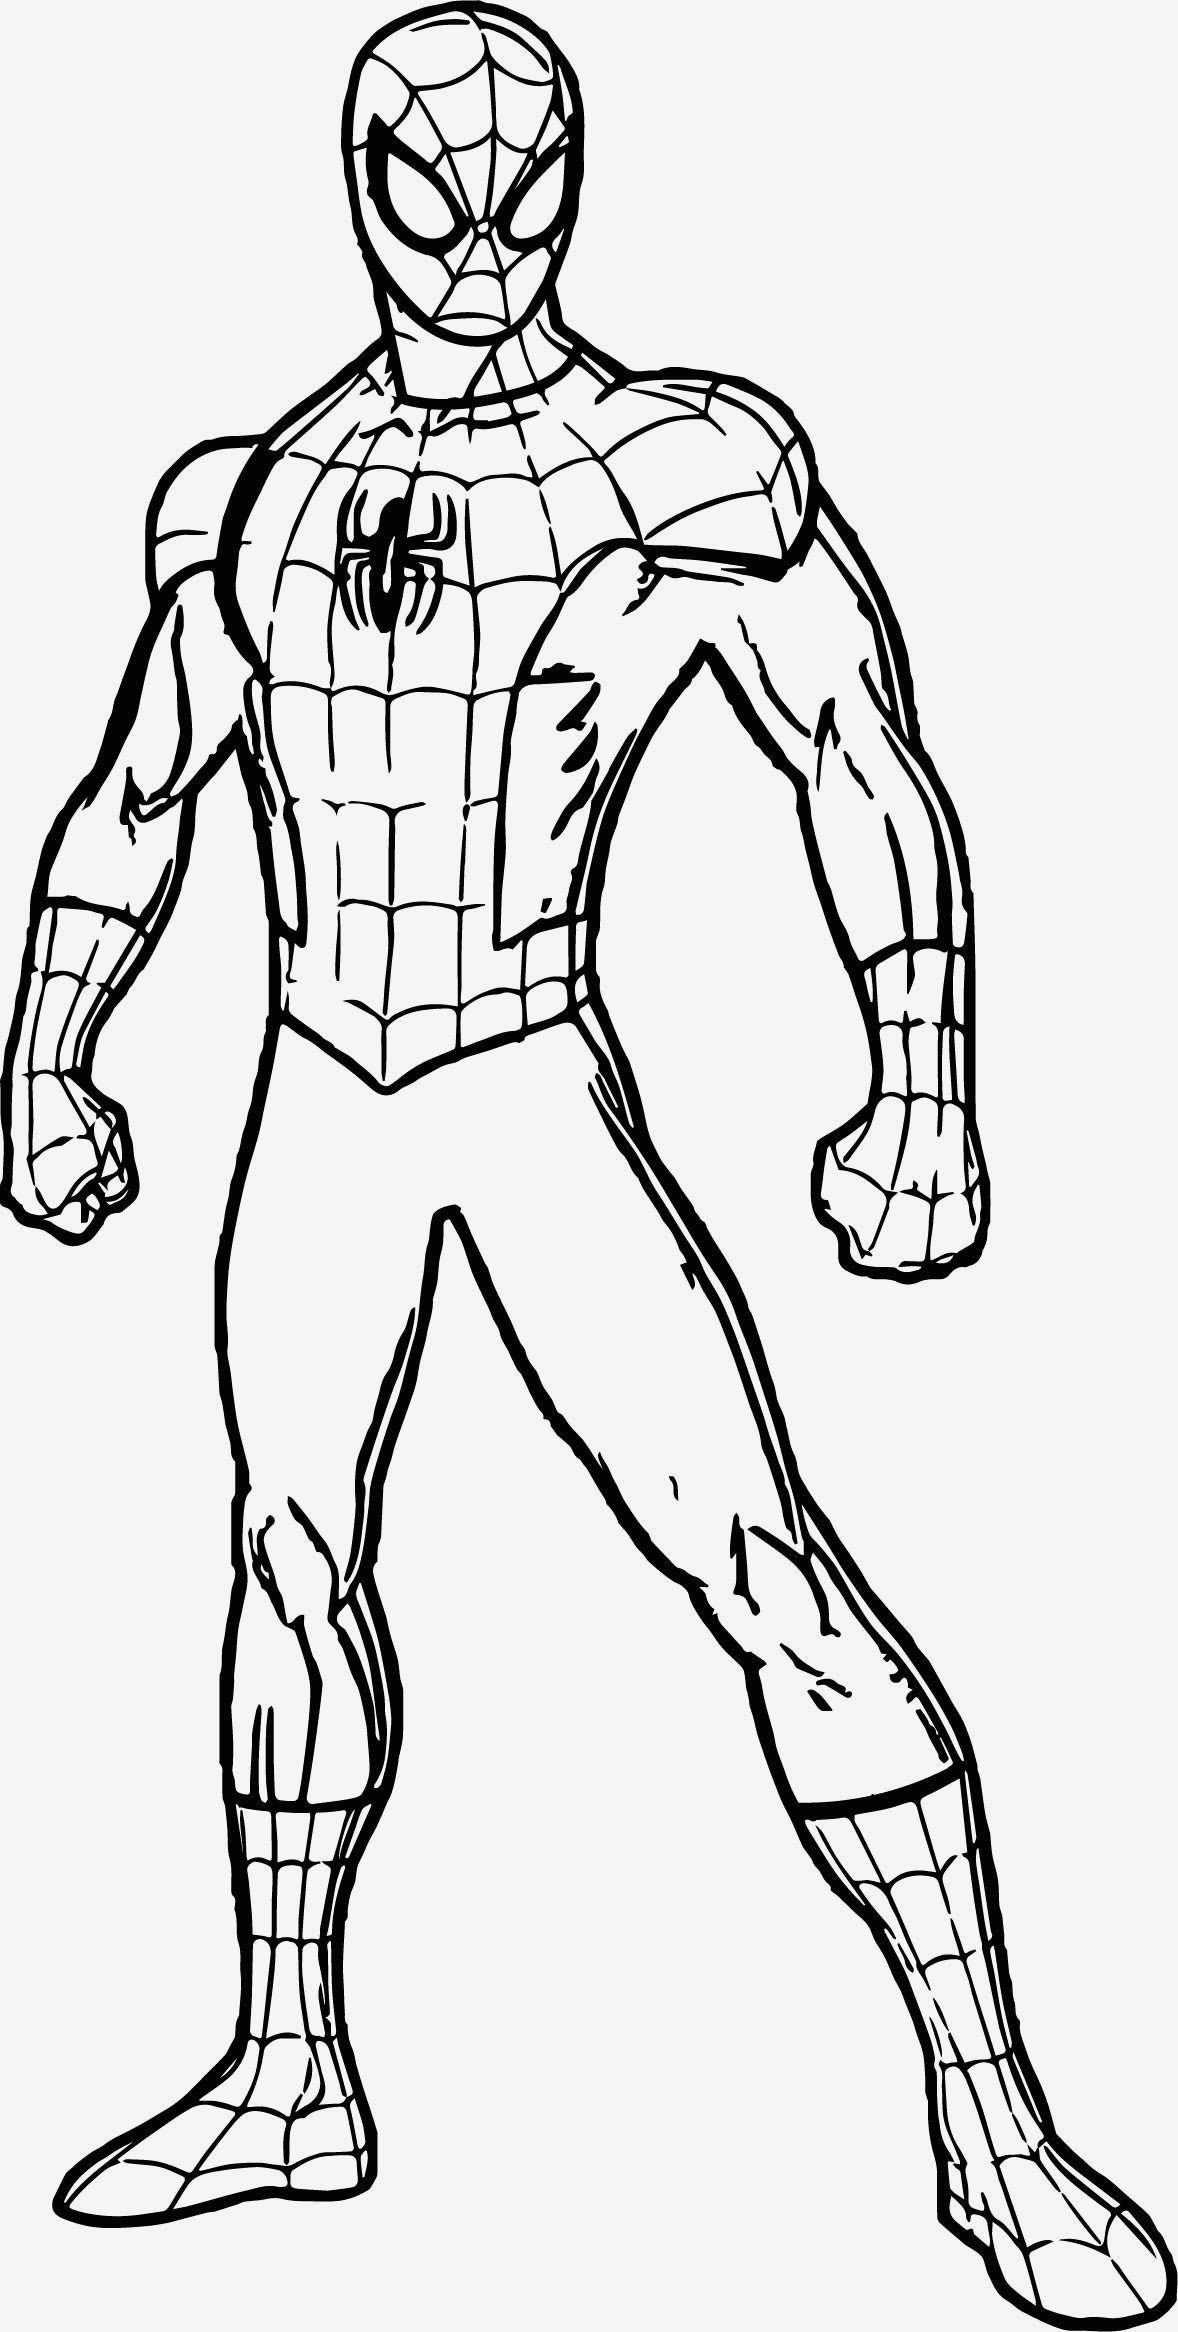 Marvelous Image Of Free Spiderman Coloring Pages Davemelillo Com Avengers Coloring Pages Superhero Coloring Avengers Coloring